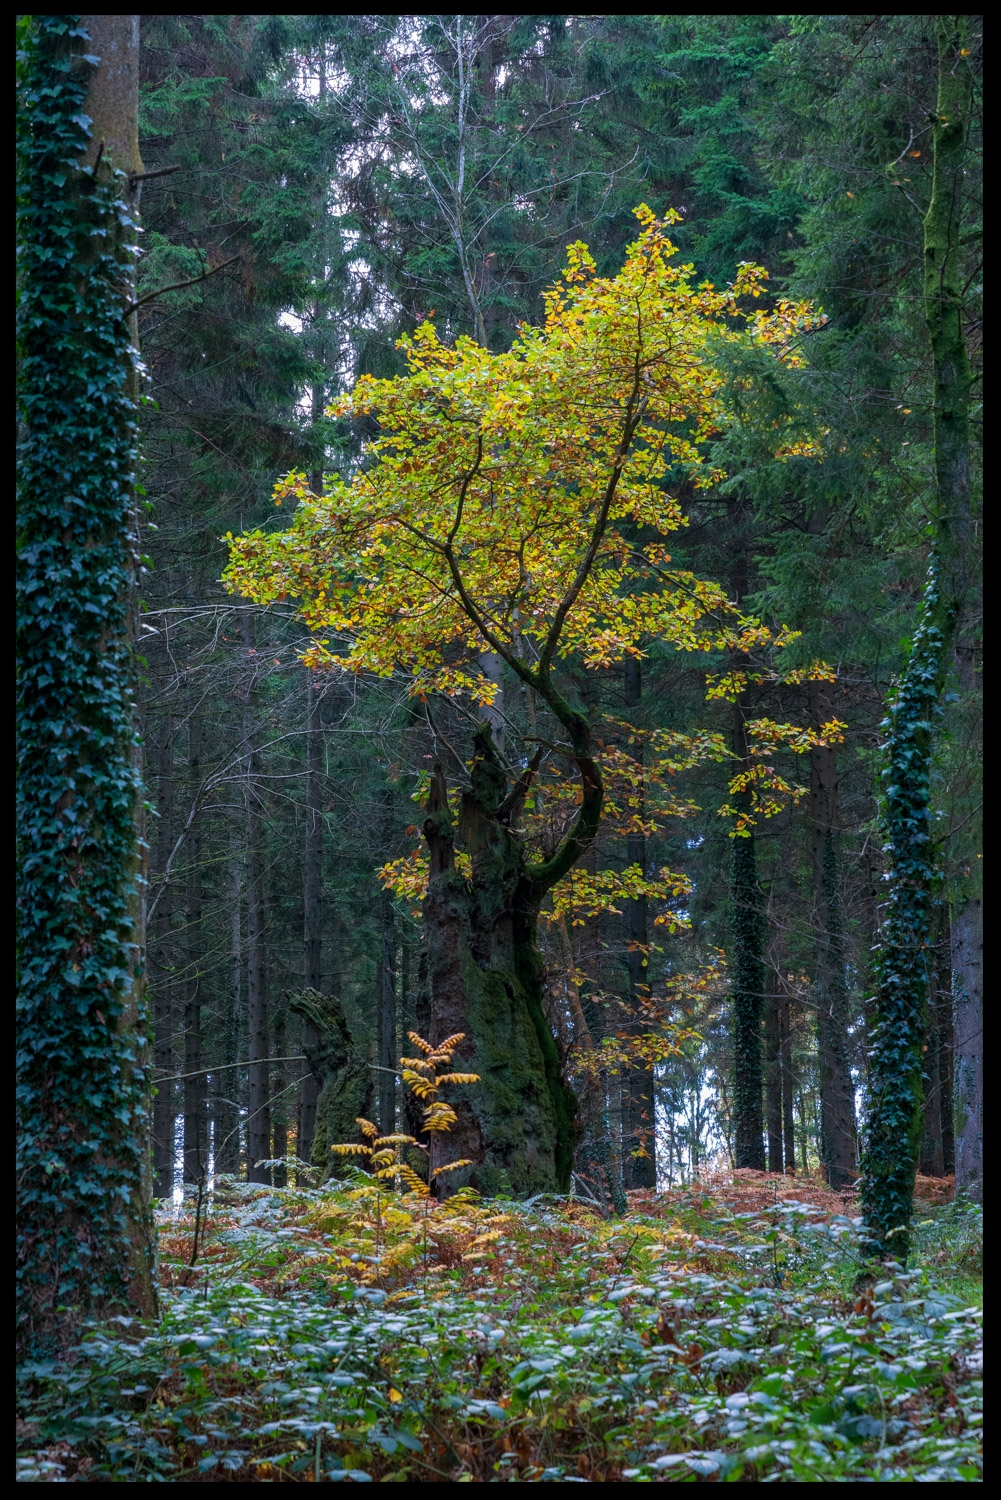 Zytynski-Autumn-Woodlands-16.jpg